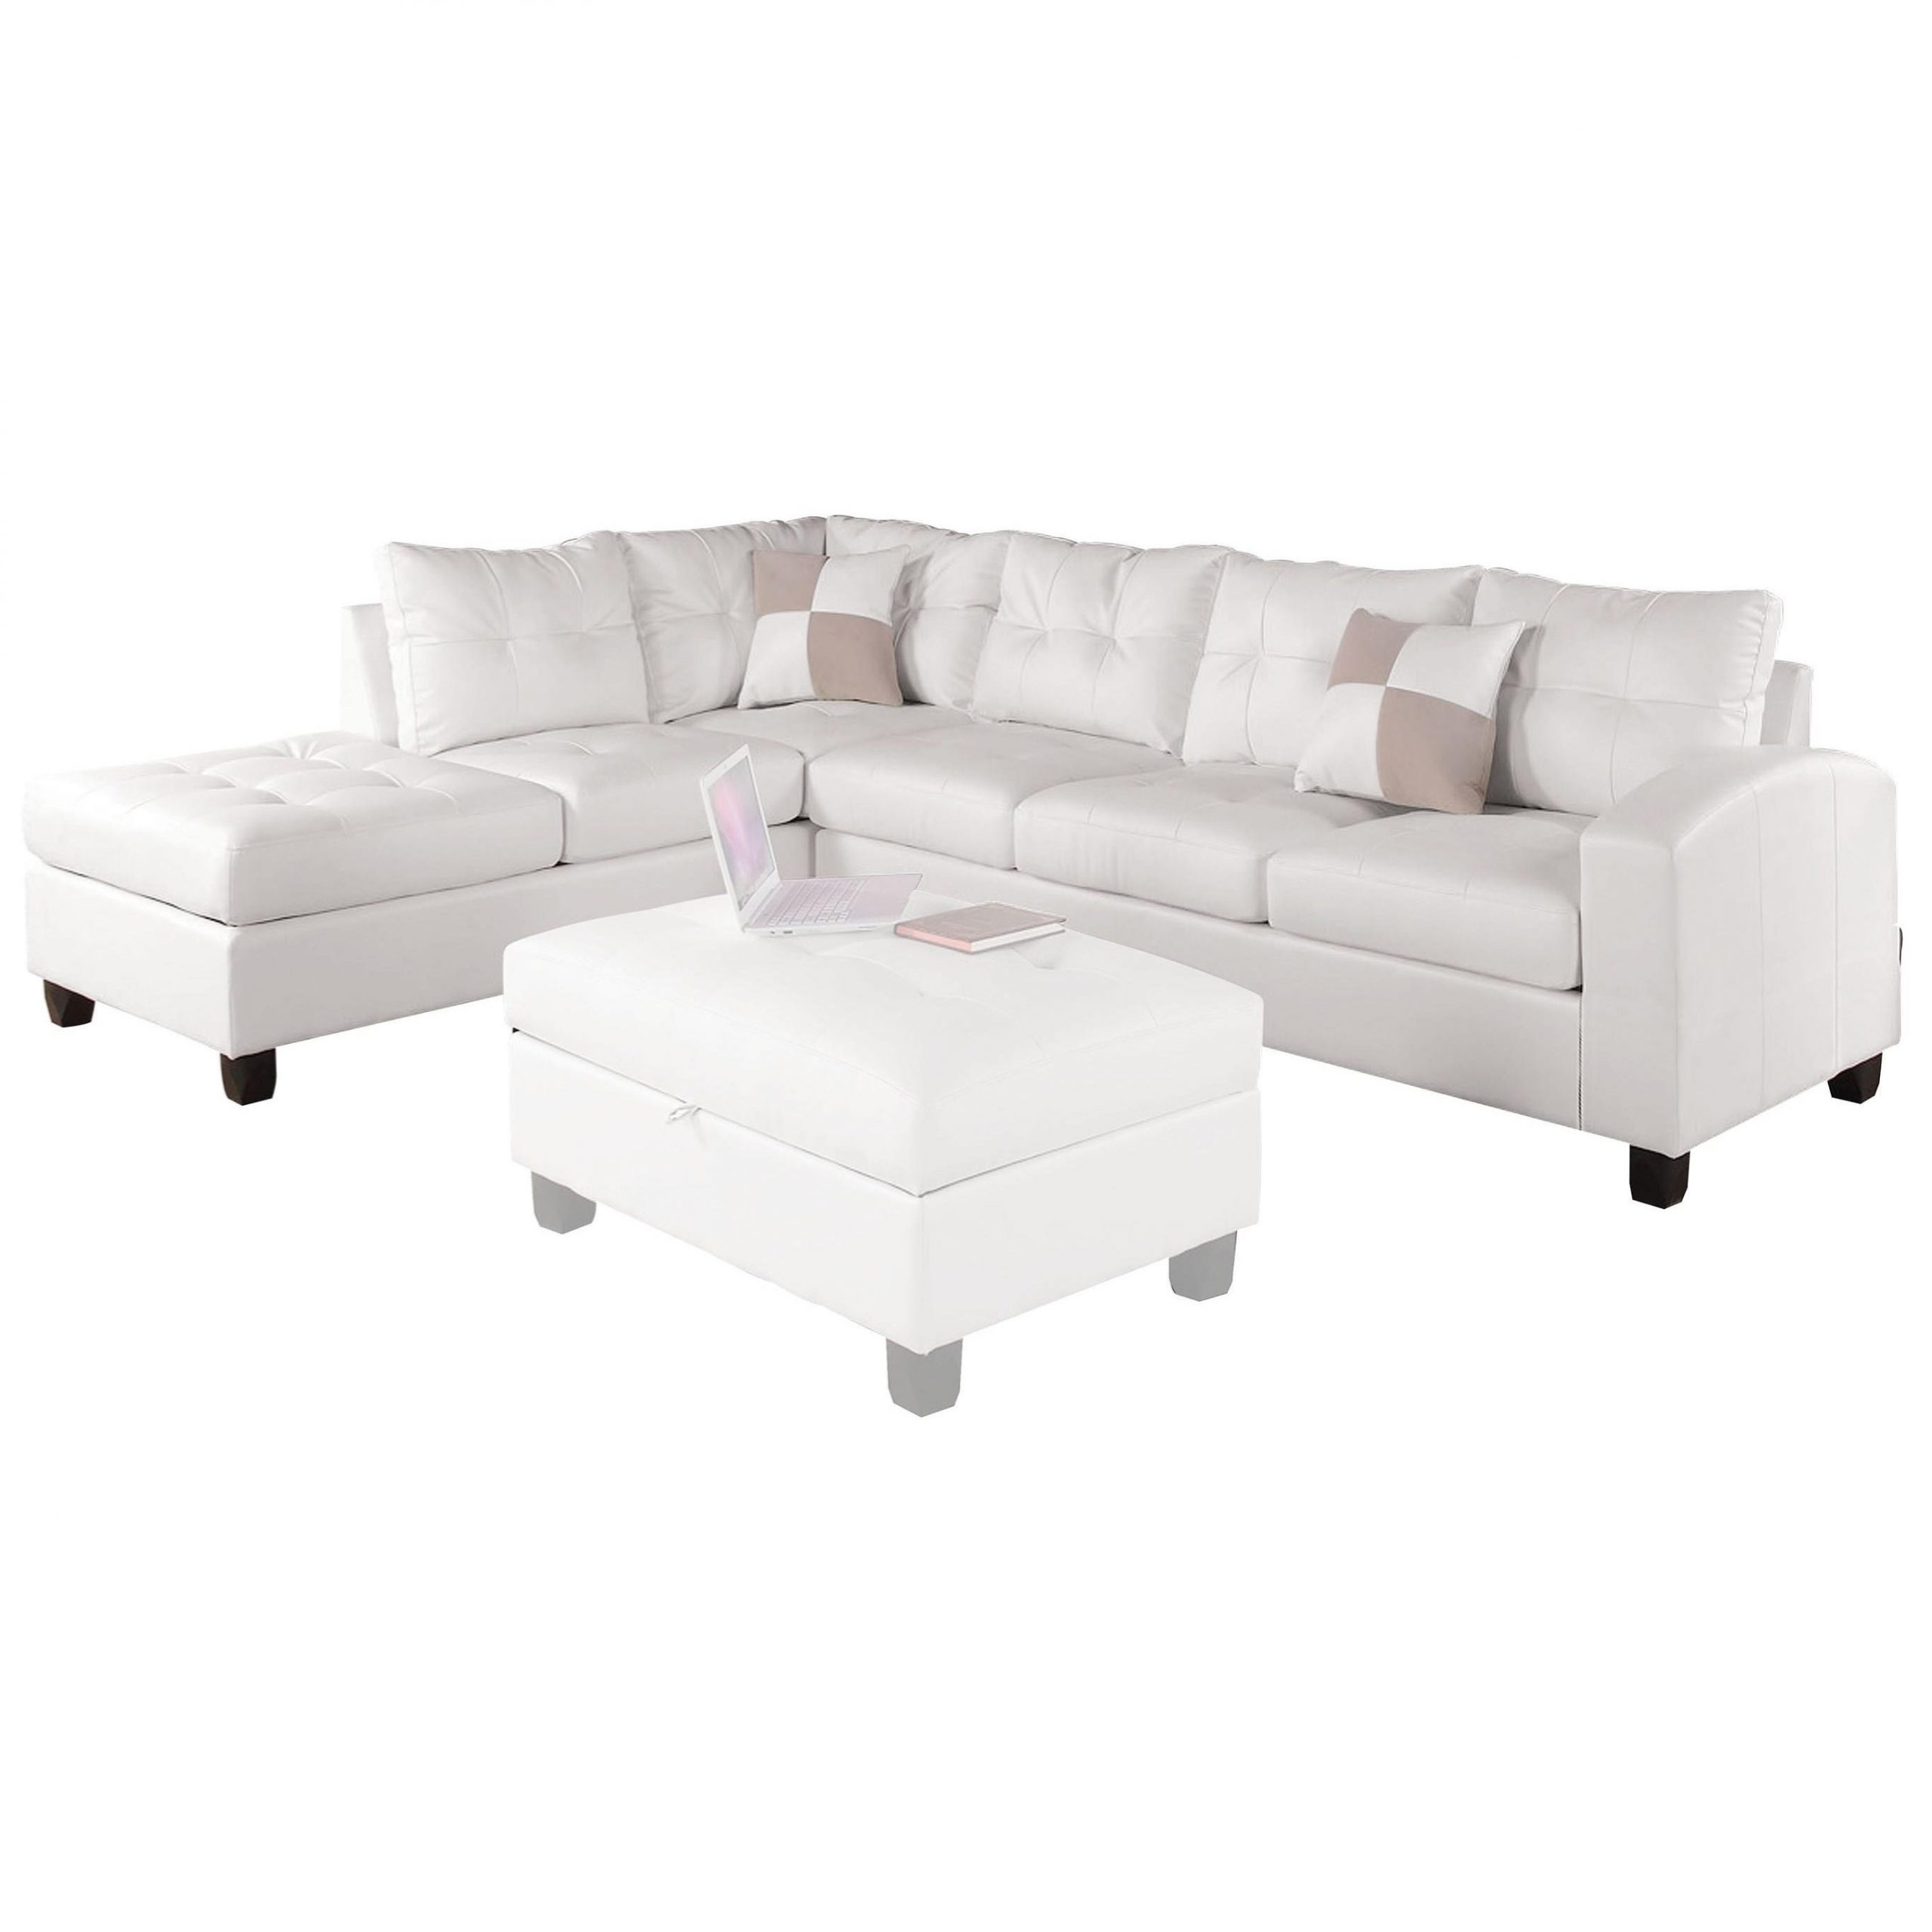 2019 Clifton Reversible Sectional Sofas With Pillows With Regard To Acme Furniture Kiva Sectional Sofa W/2 Pillows (reversible (View 15 of 20)